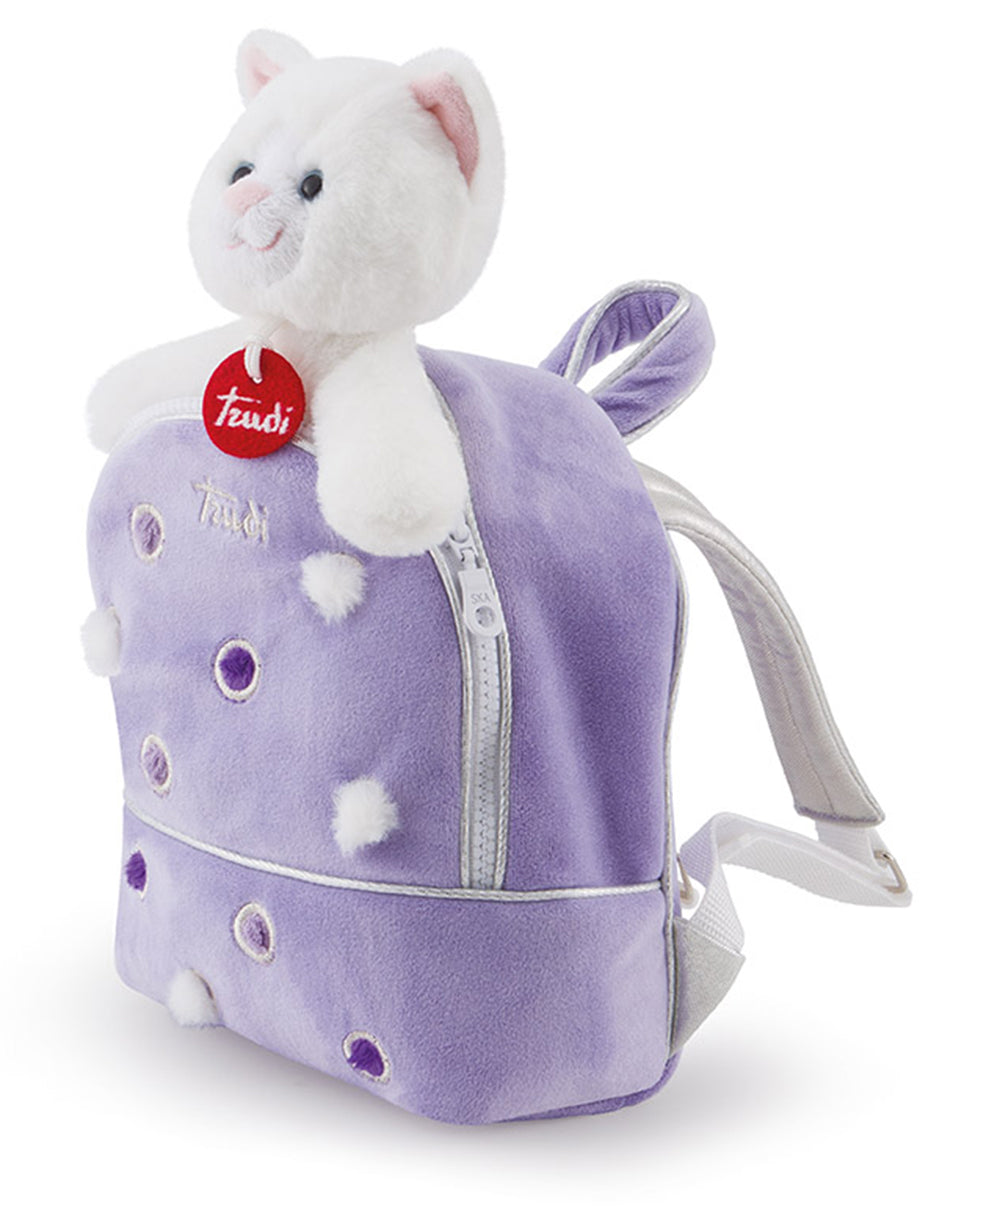 Pets Kitty Cat in a Lilac Backpack - 20cm